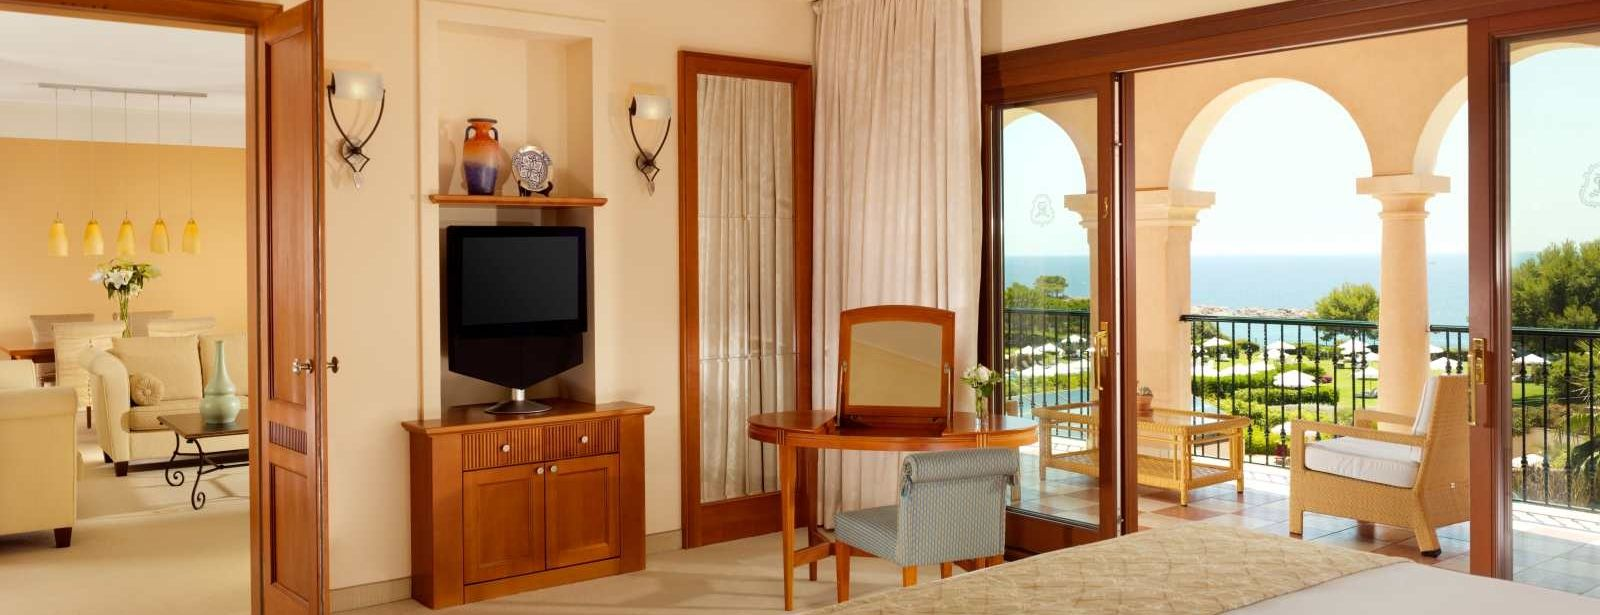 Ocean One Suite | The St. Regis Mardavall Mallorca Resort